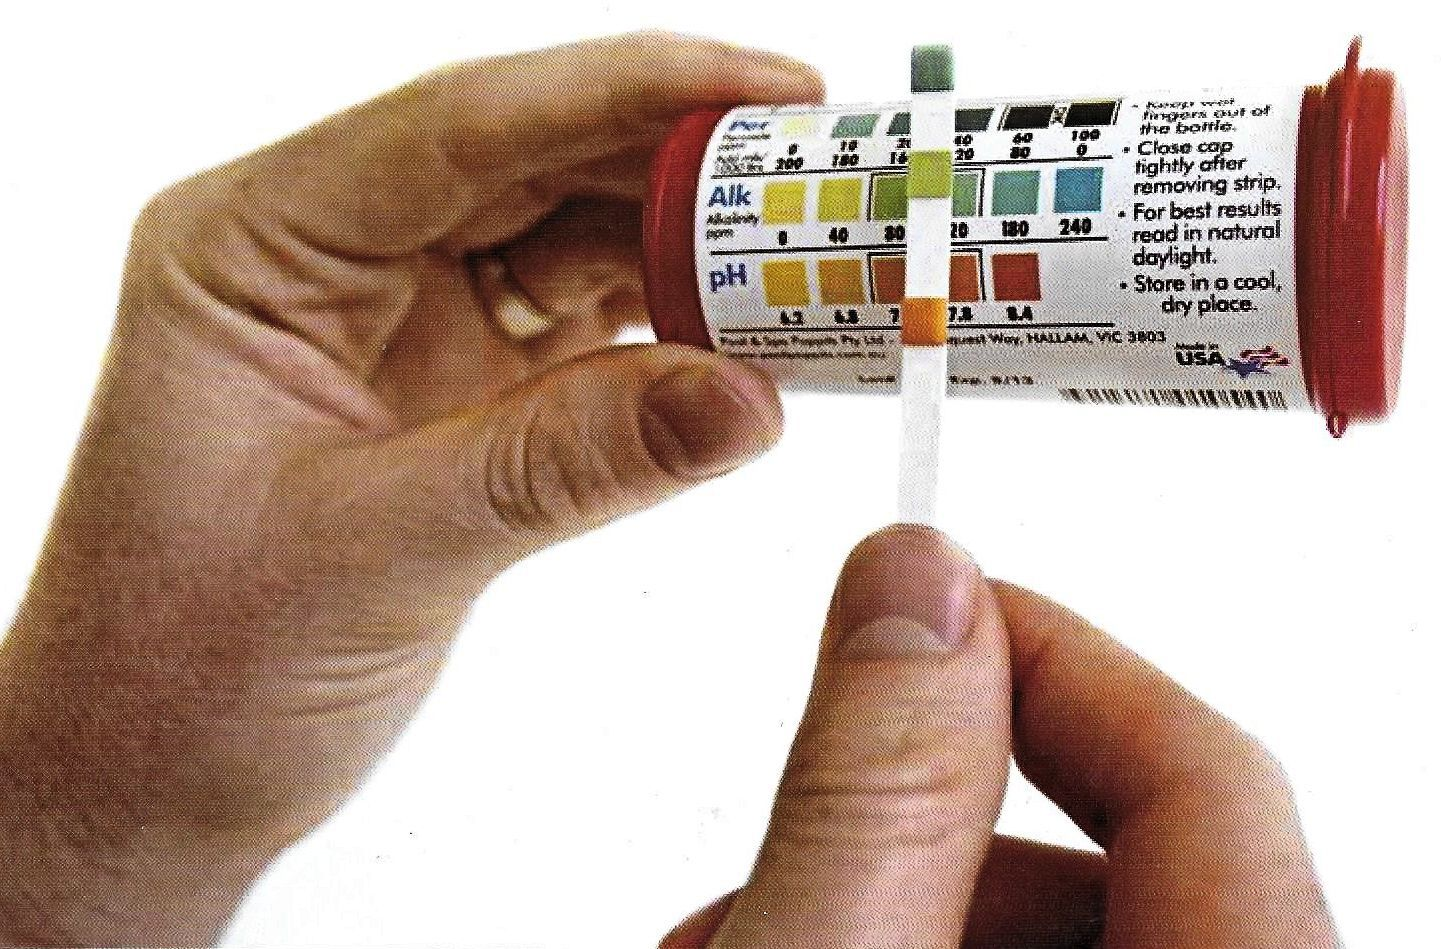 Peroxsil test strips